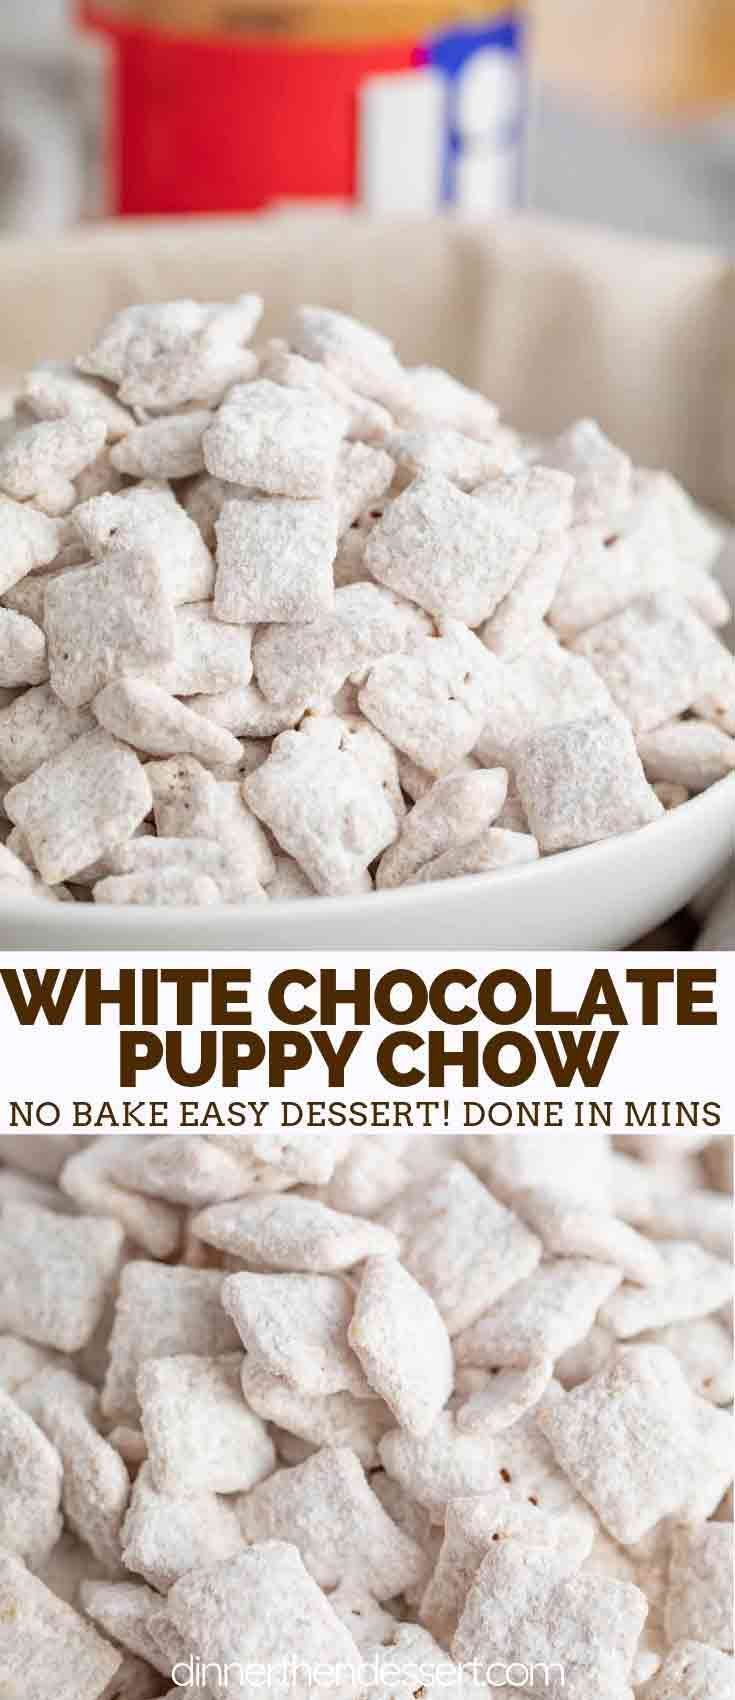 White Chocolate Puppy Chow (Muddy Buddies) are crunchy and sweet, made with ONLY 4 ingredients, Chex cereal, peanut butter, white chocolate, and powdered sugar, and ready in under 5 minutes! #muddybuddies #nobake #christmas #puppychow #chocolate #peanutbutter #chexmix #valentinesday #desserts #holiday #dinnerthendessert #puppychow